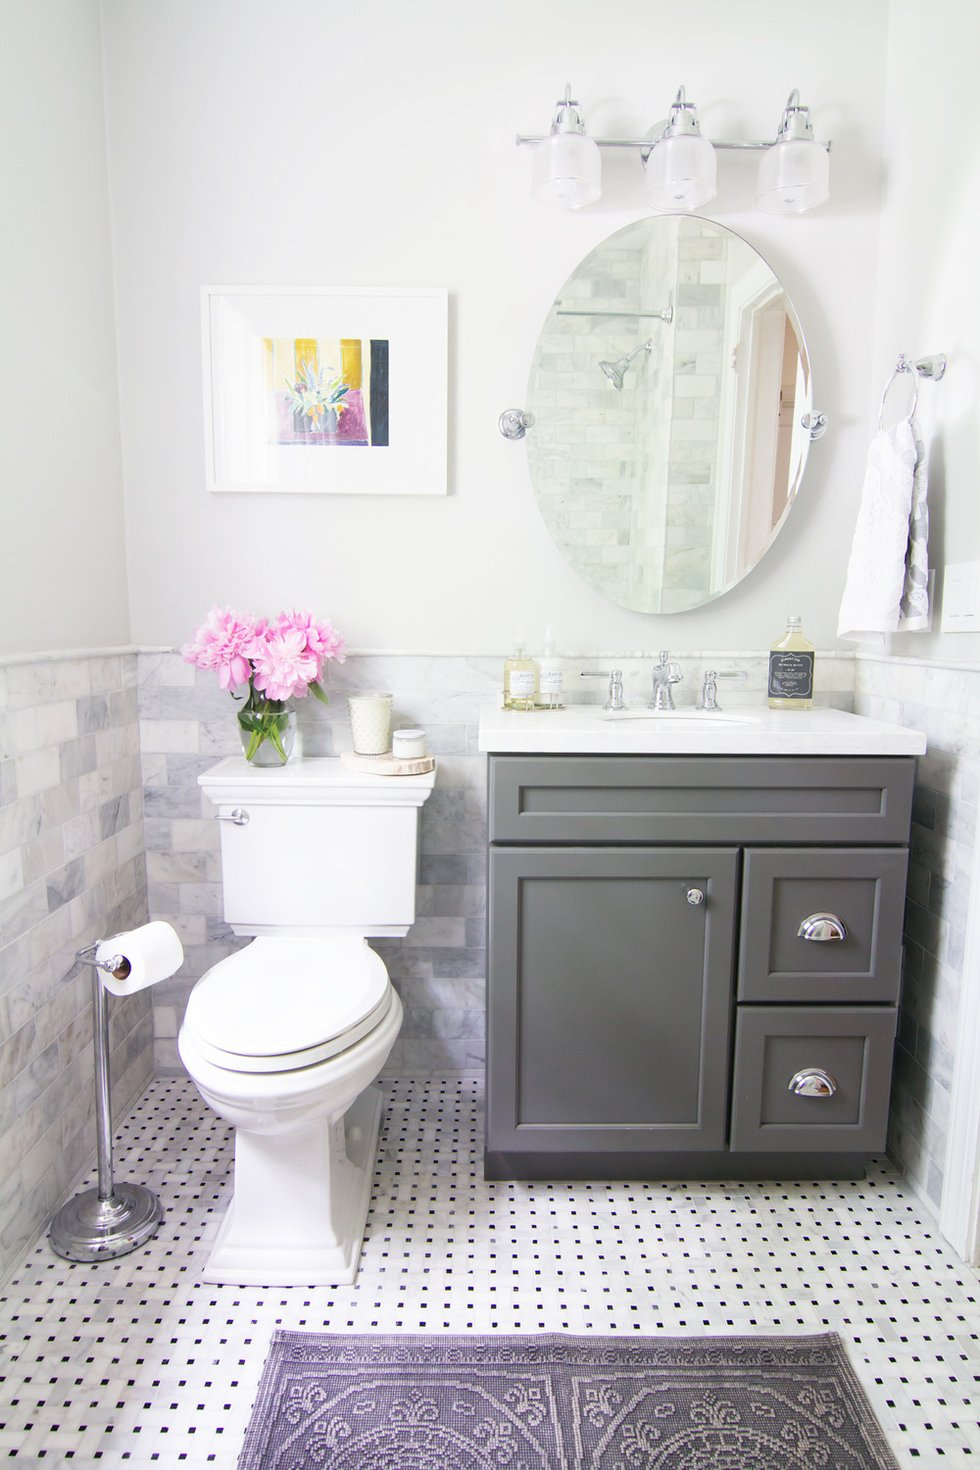 Modern and simple small bathroom ideas you can try at home for Mini bathroom